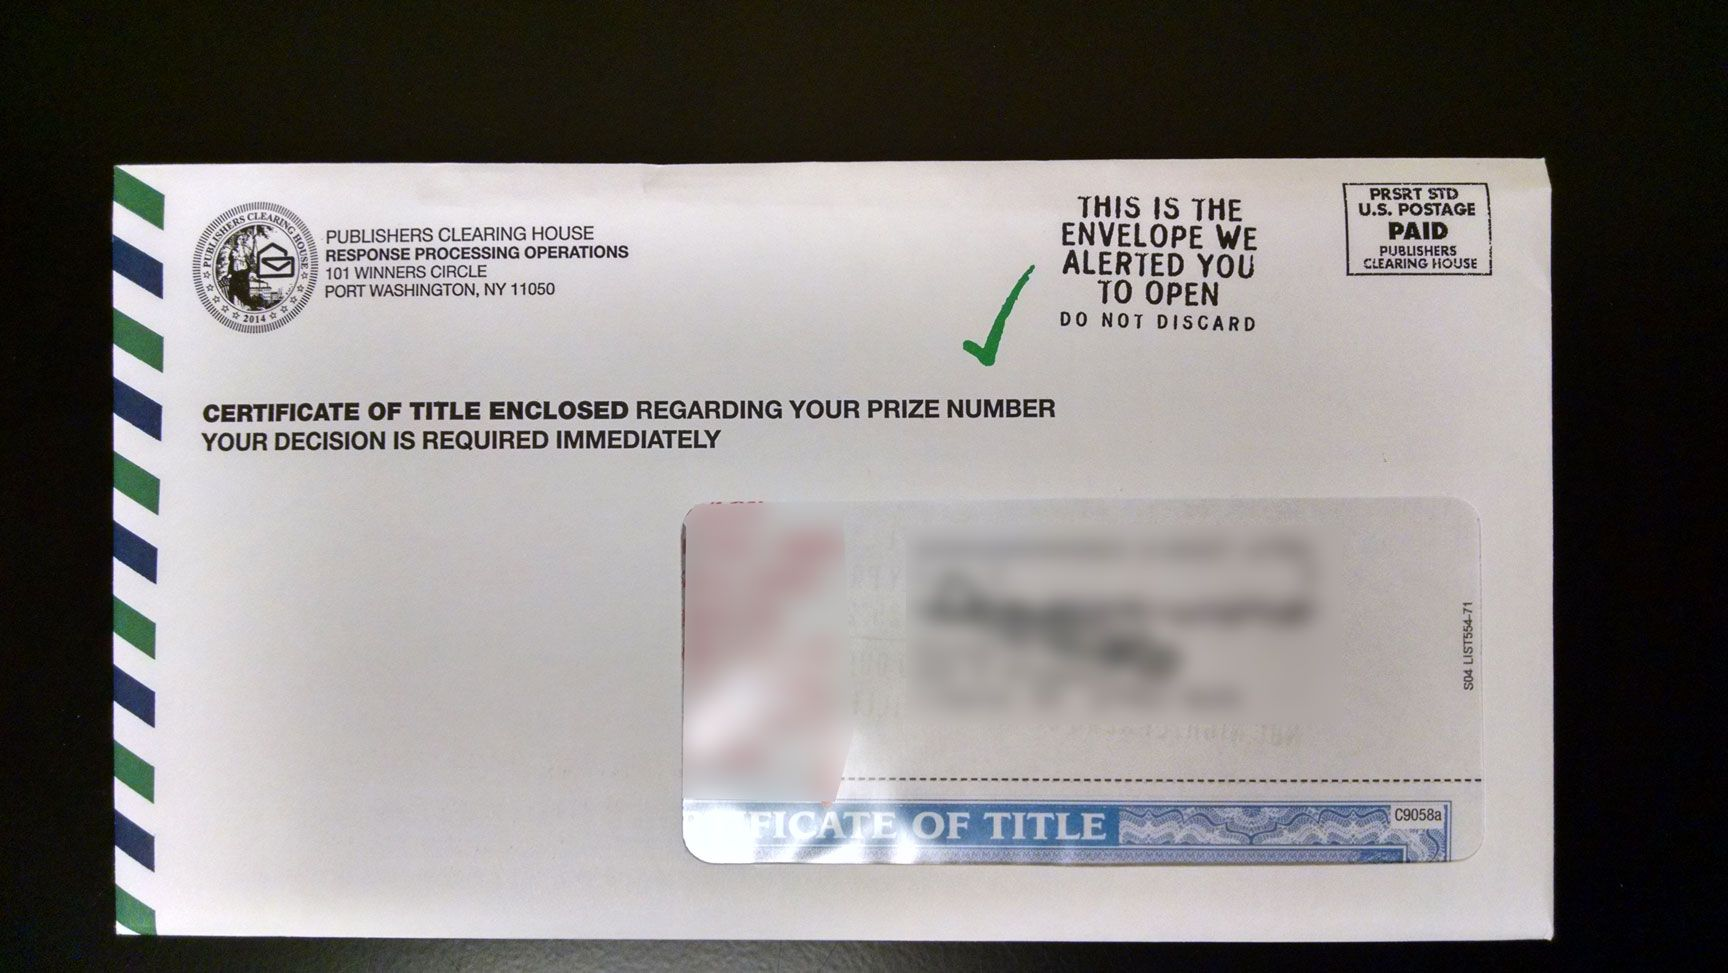 Did You Receive A Certificate of Title in the Mail